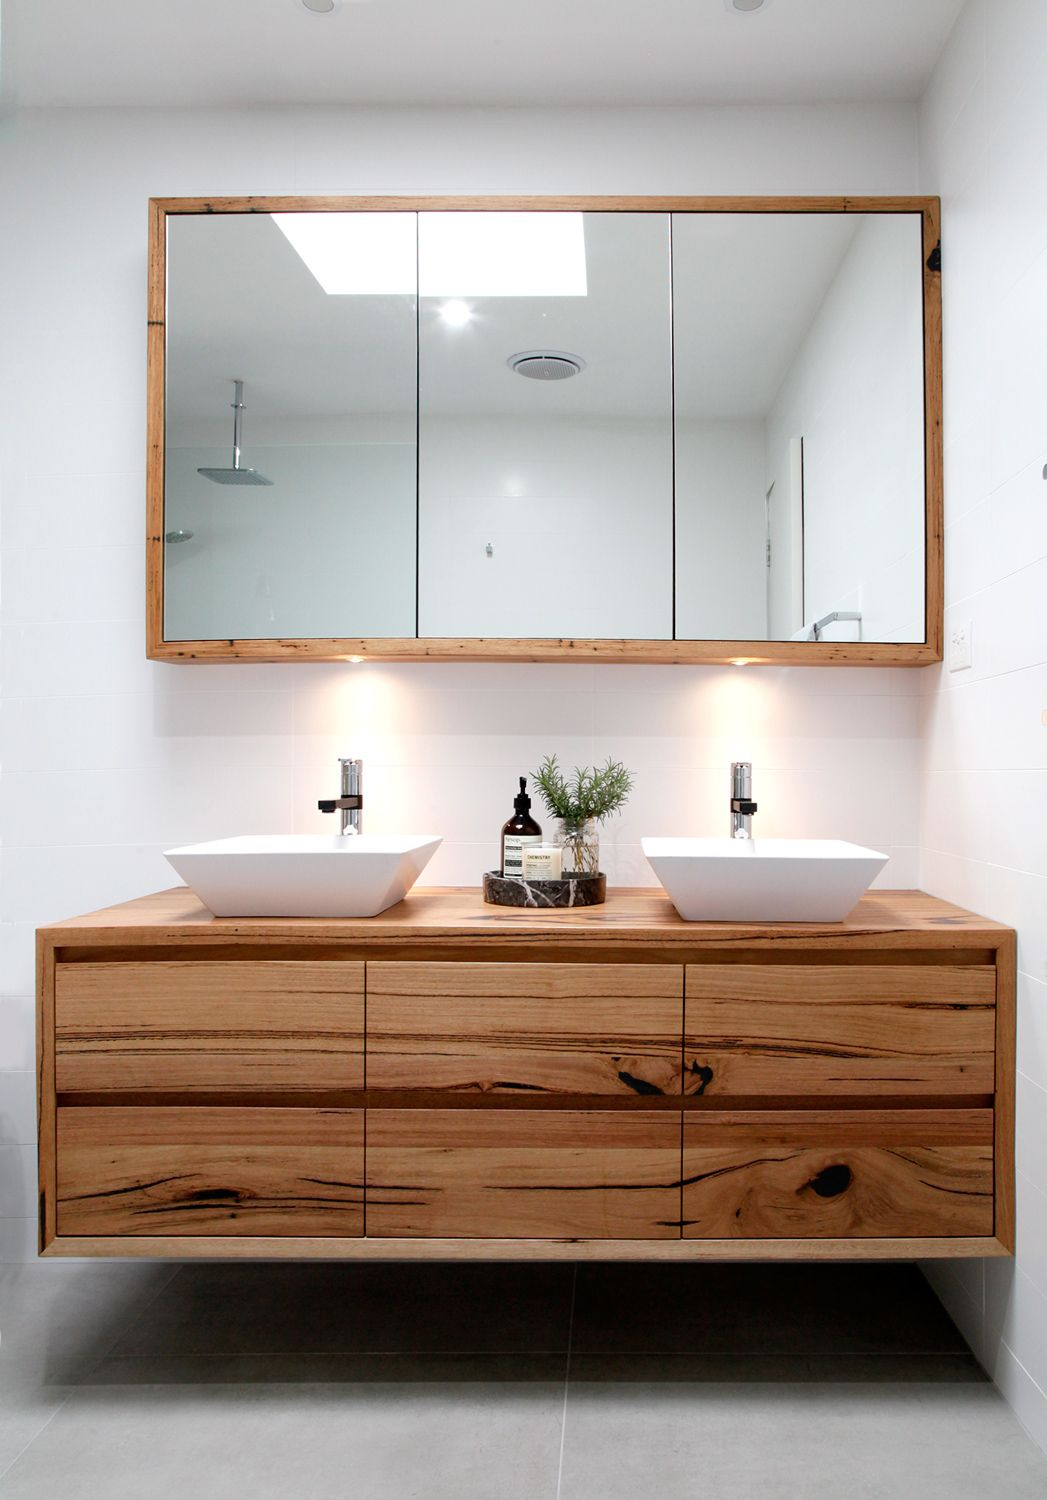 Introducing the Iluka wall hung recycled timber vanity